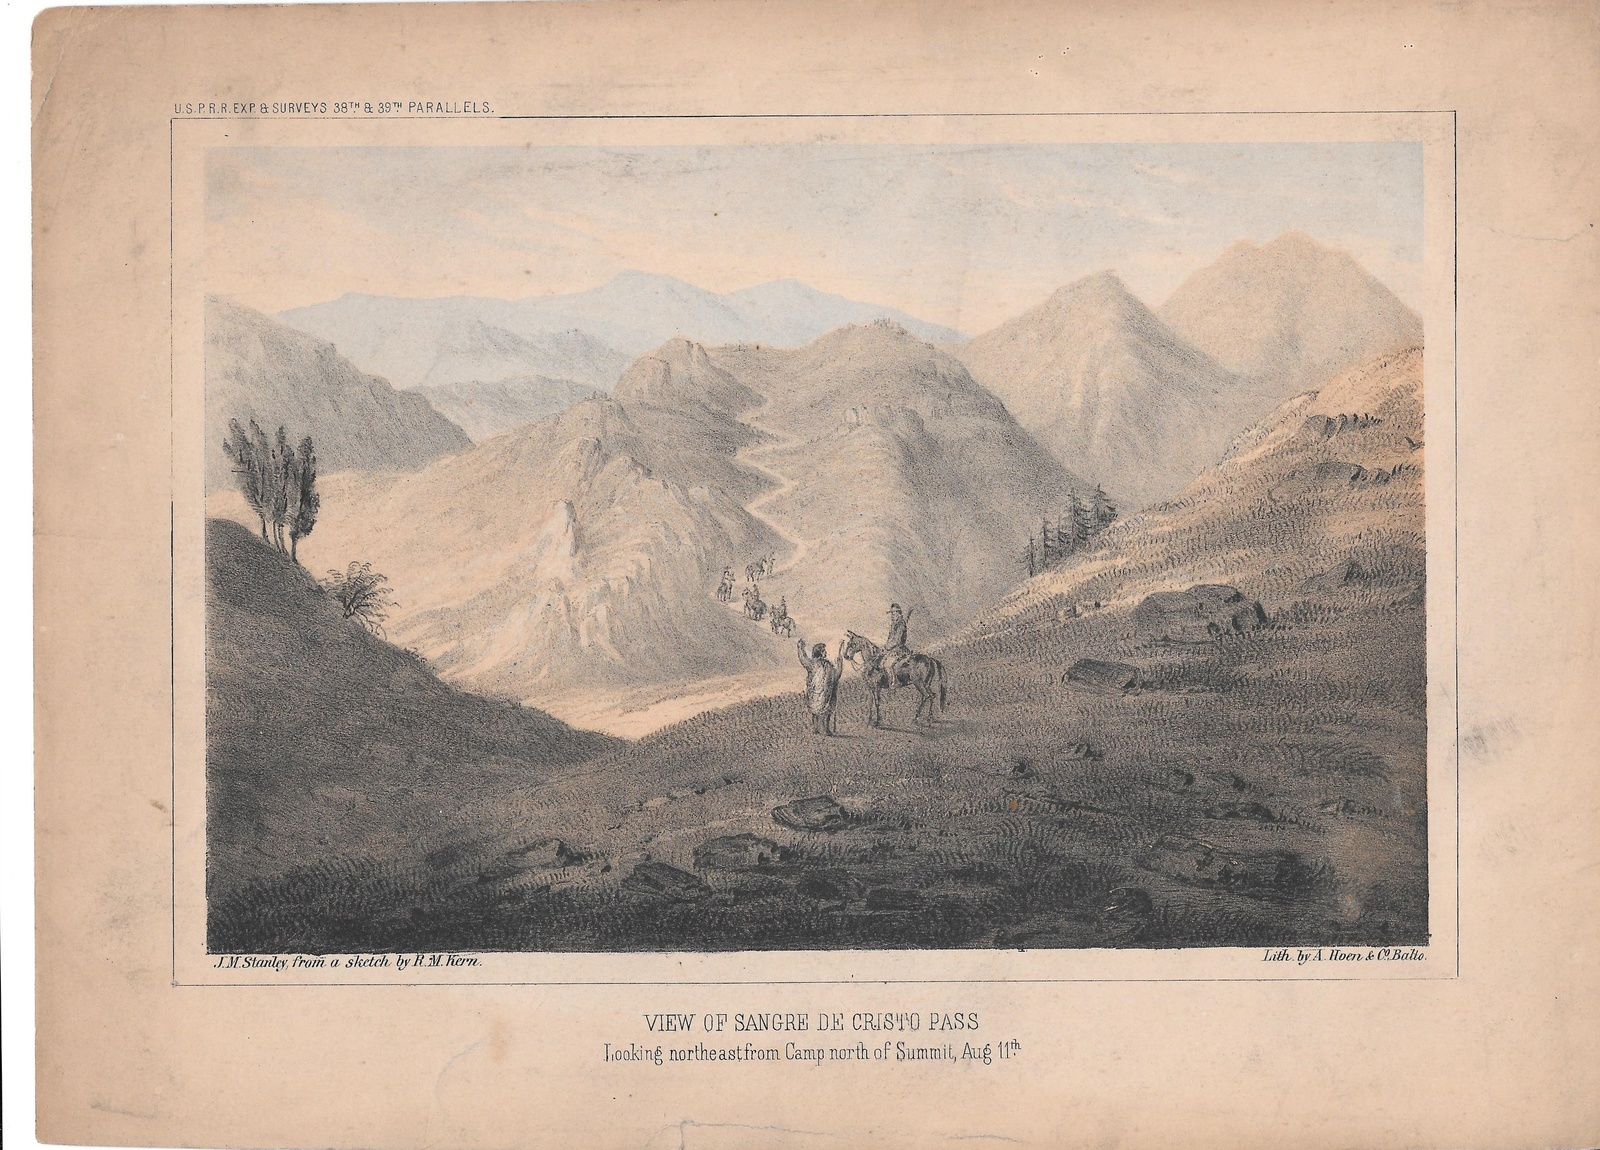 Primary image for Sangre de Cristo Pass USPRR Railroad Survey 38th 39th Parallel 1855 Lithograph